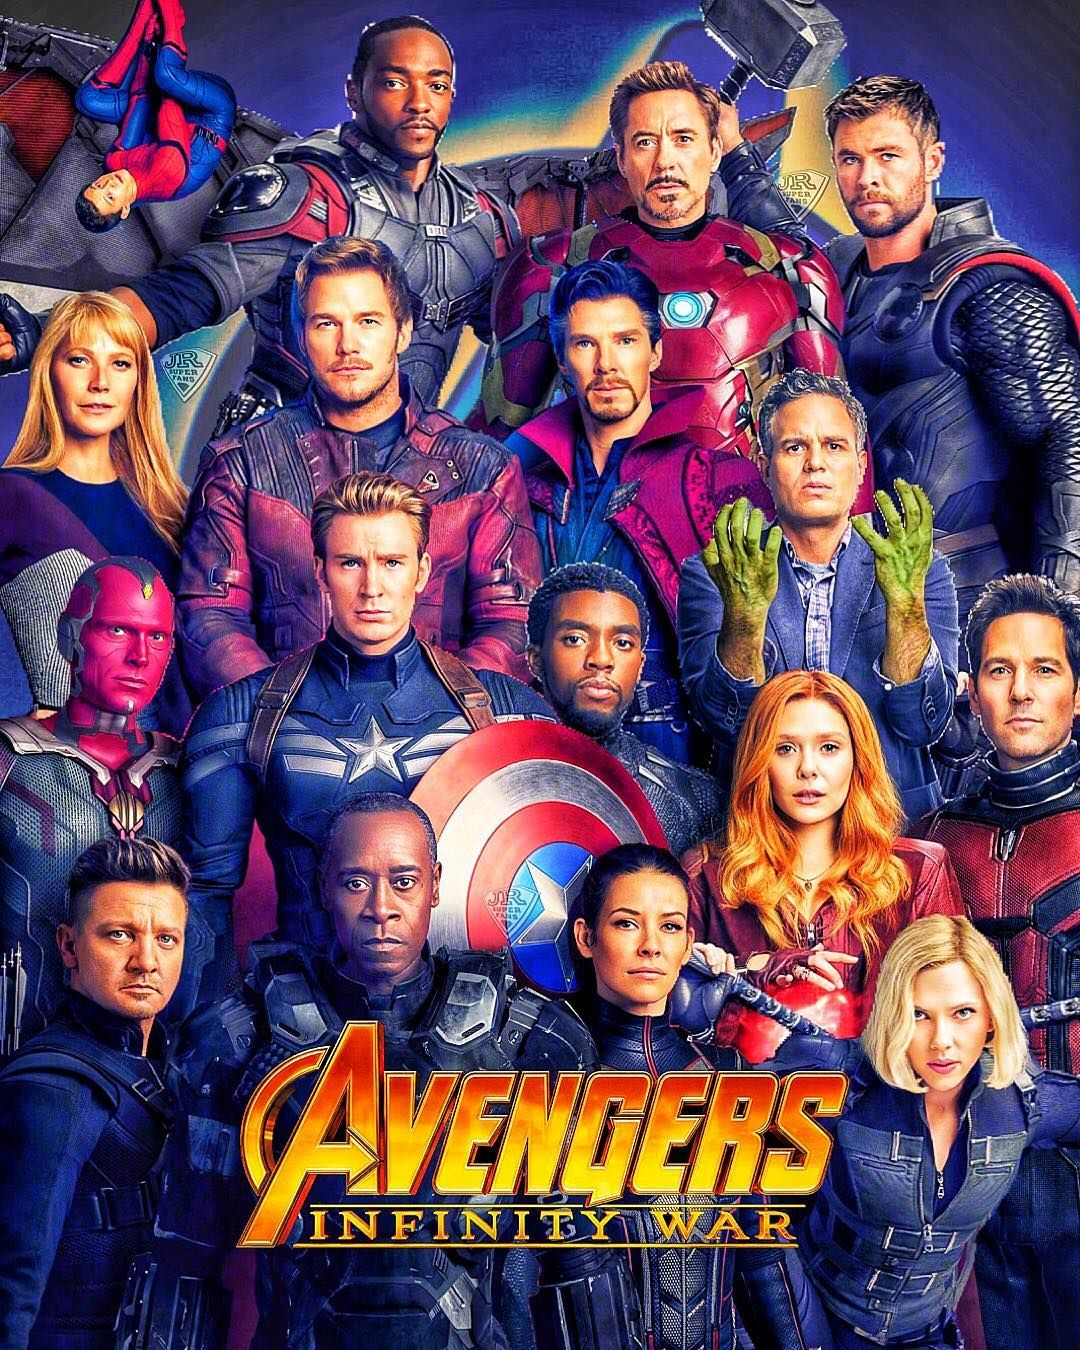 Gefallt 108 Mal 2 Kommentare Jeremy Superfans Jeremysuperfans Auf Instagram The Gathering Of Avengers Infinity War V Marvel Superheroes Avengers Marvel